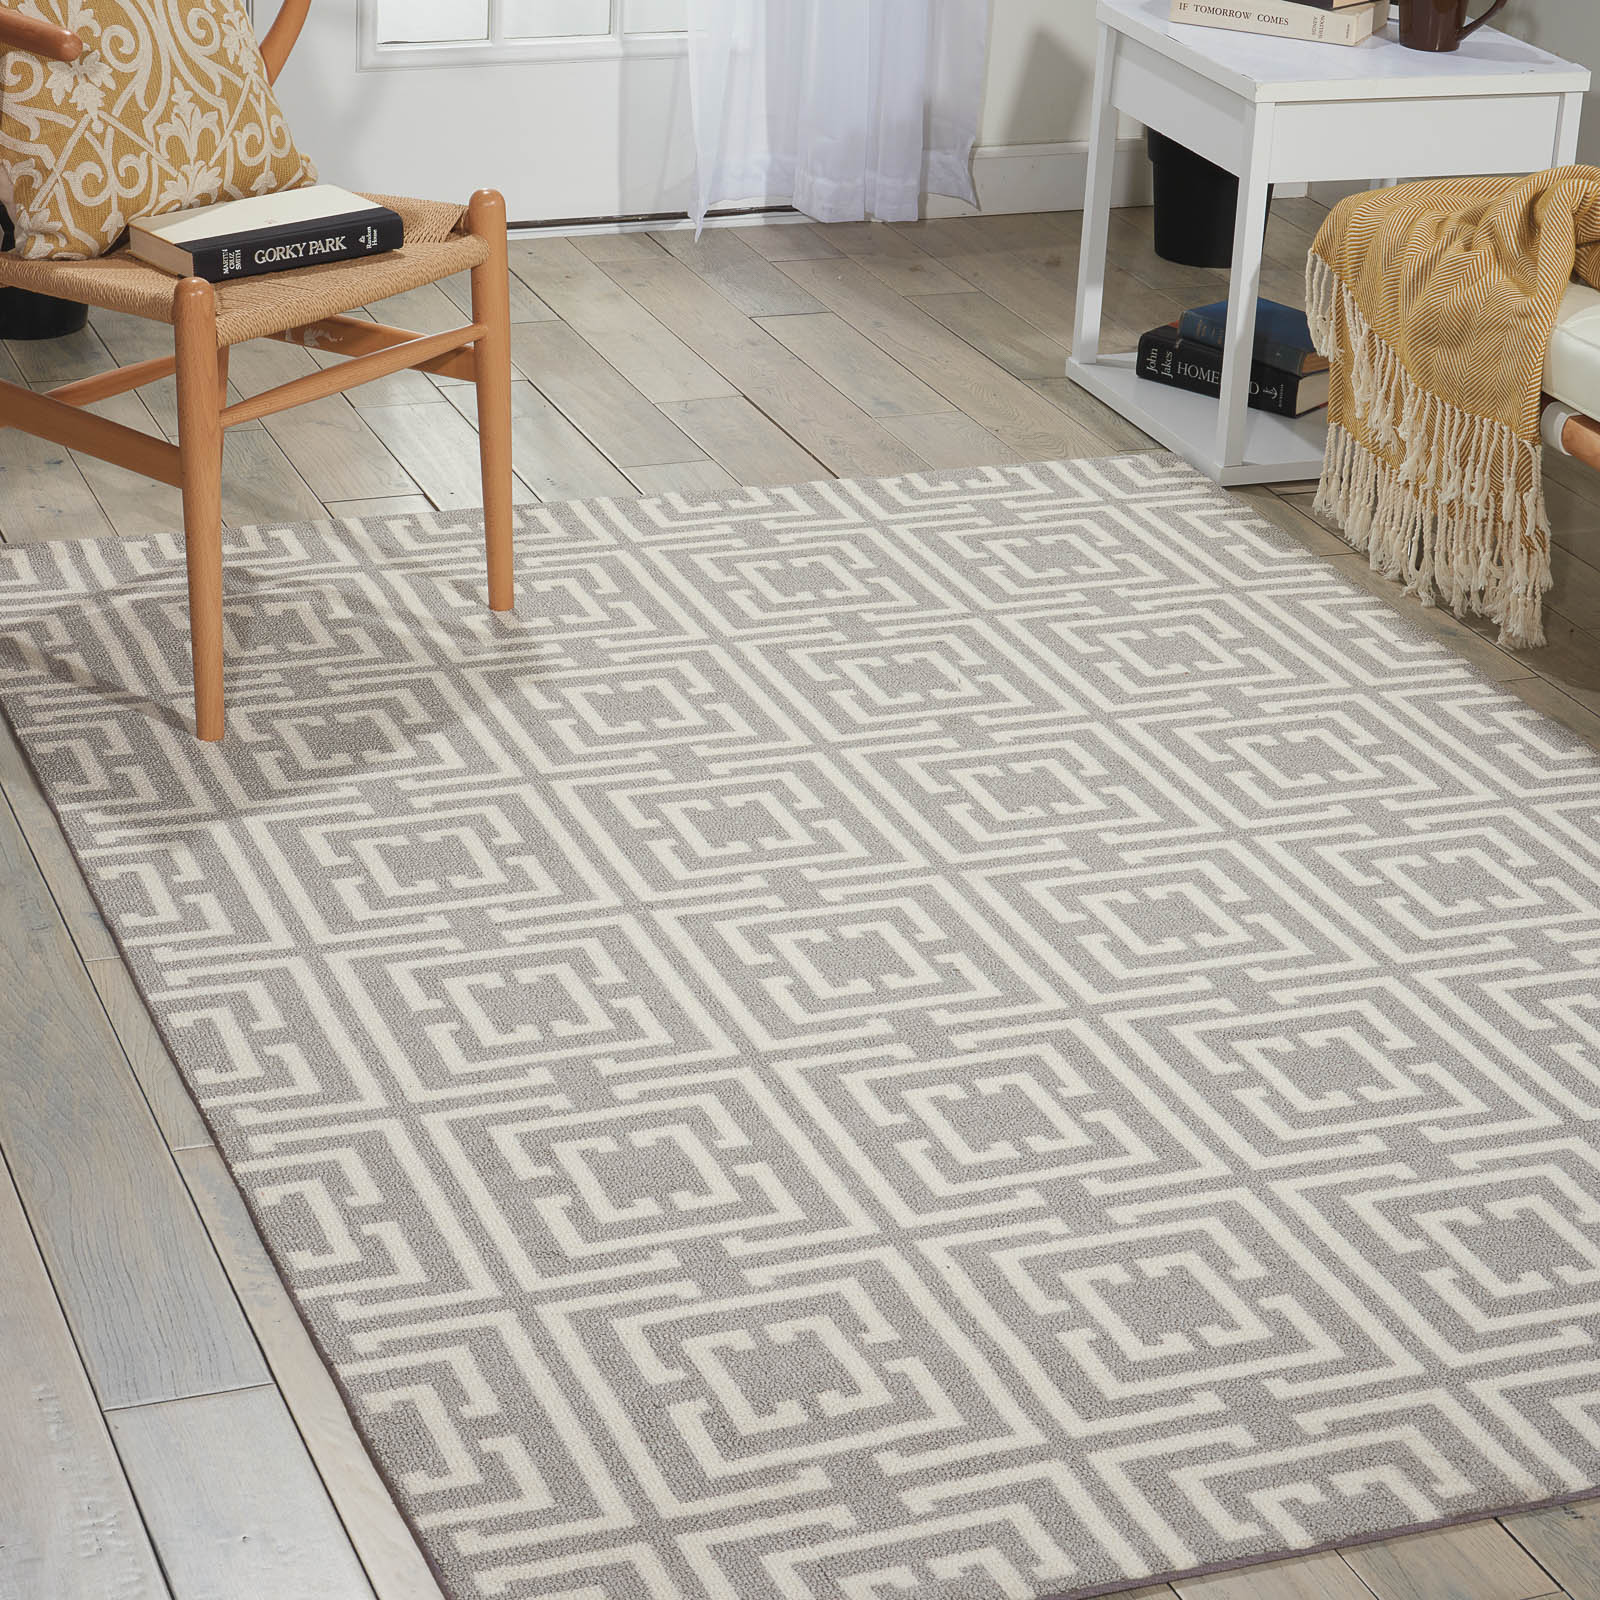 Enhance Rugs EN202 in Grey and Beige